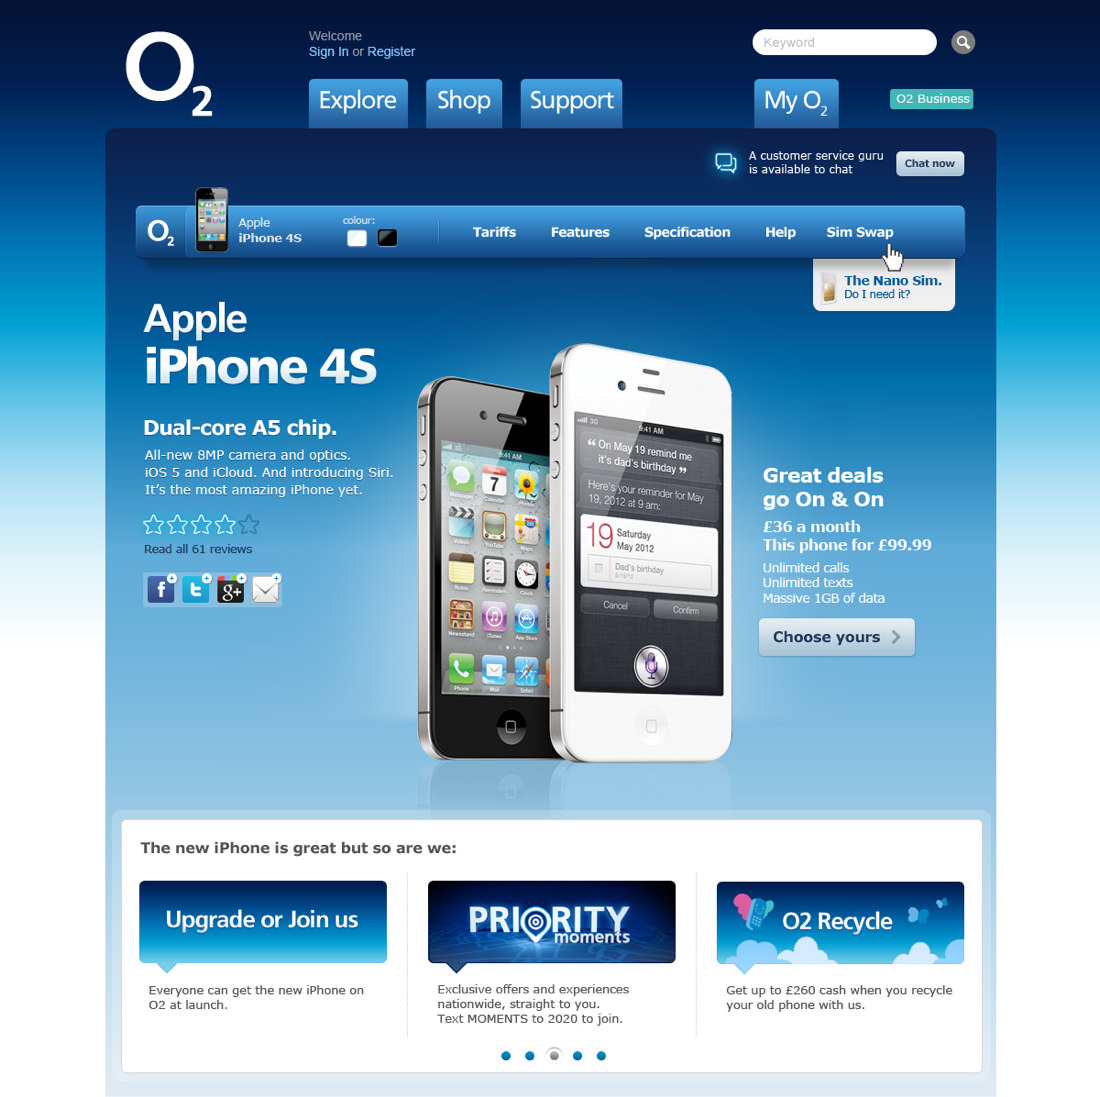 o2 business chat